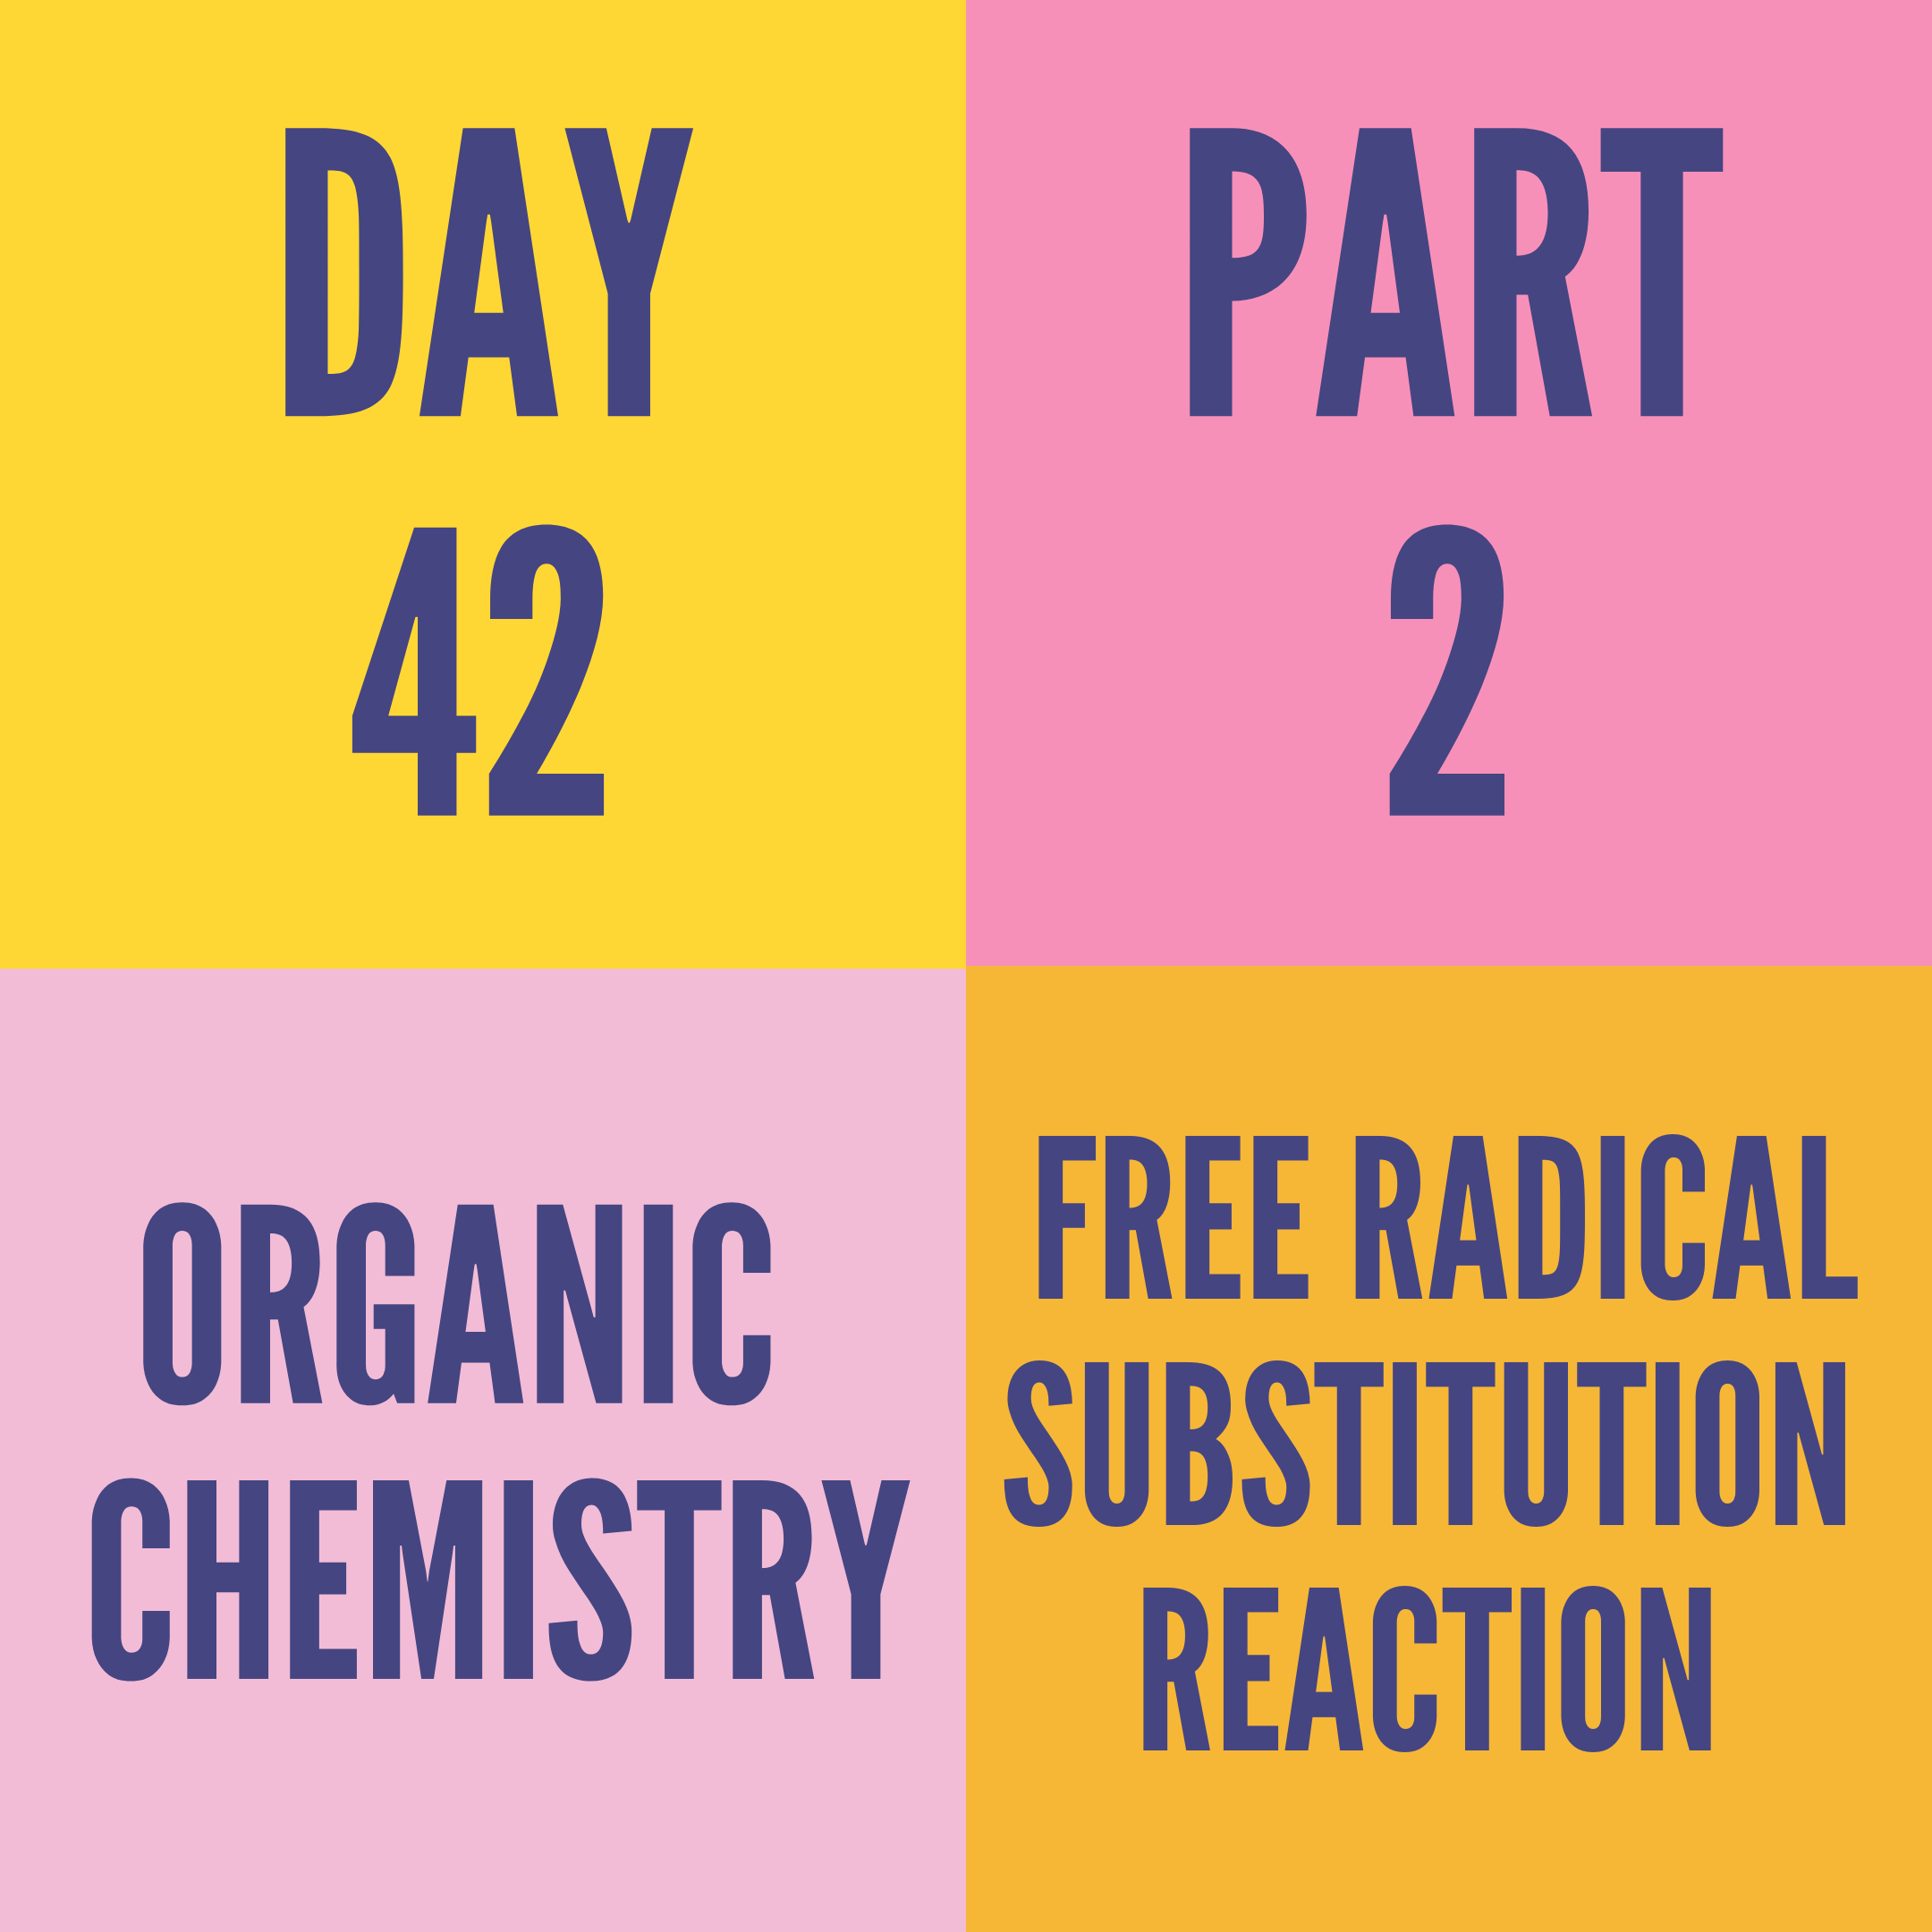 DAY-42 PART-2   FREE RADICAL SUBSTITUTION REACTION